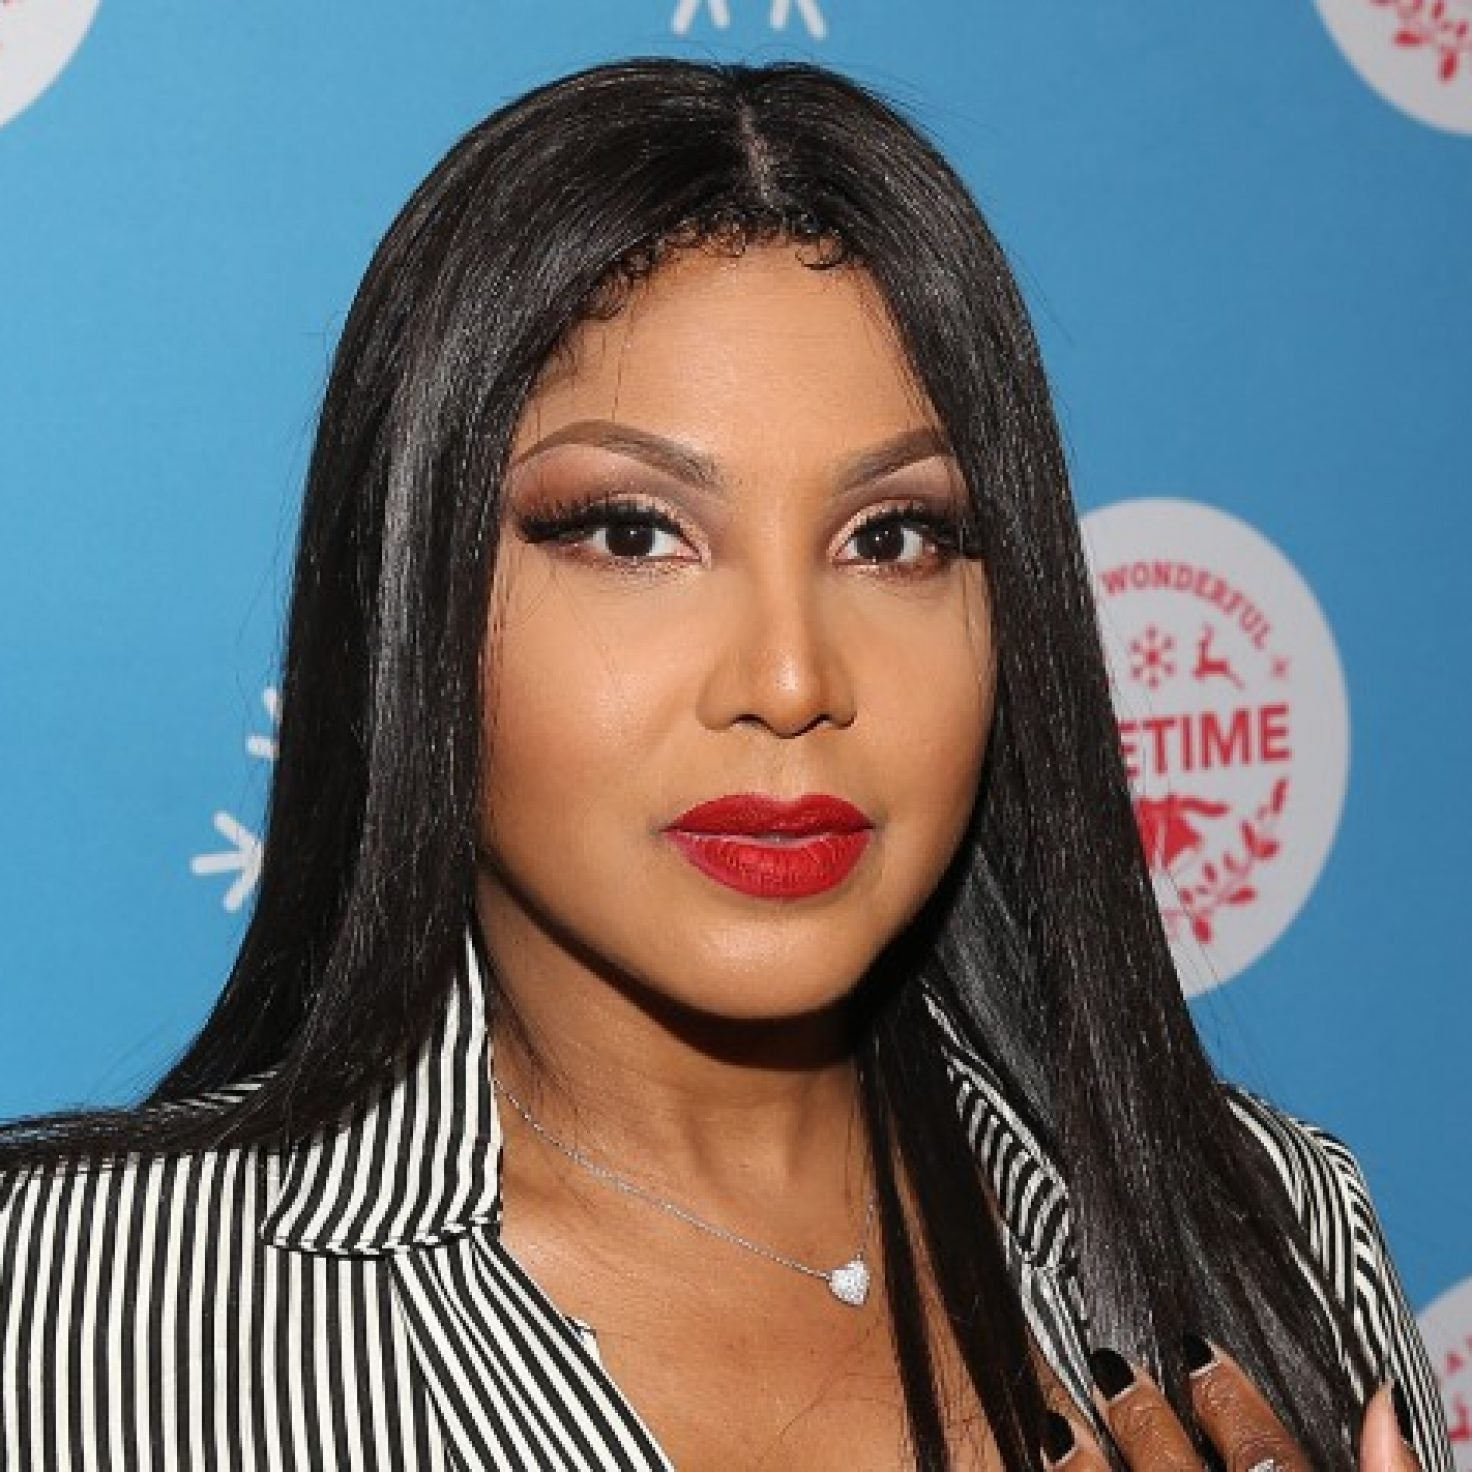 You Won't Believe What Device Toni Braxton Uses To Keep Her Skin Flawless